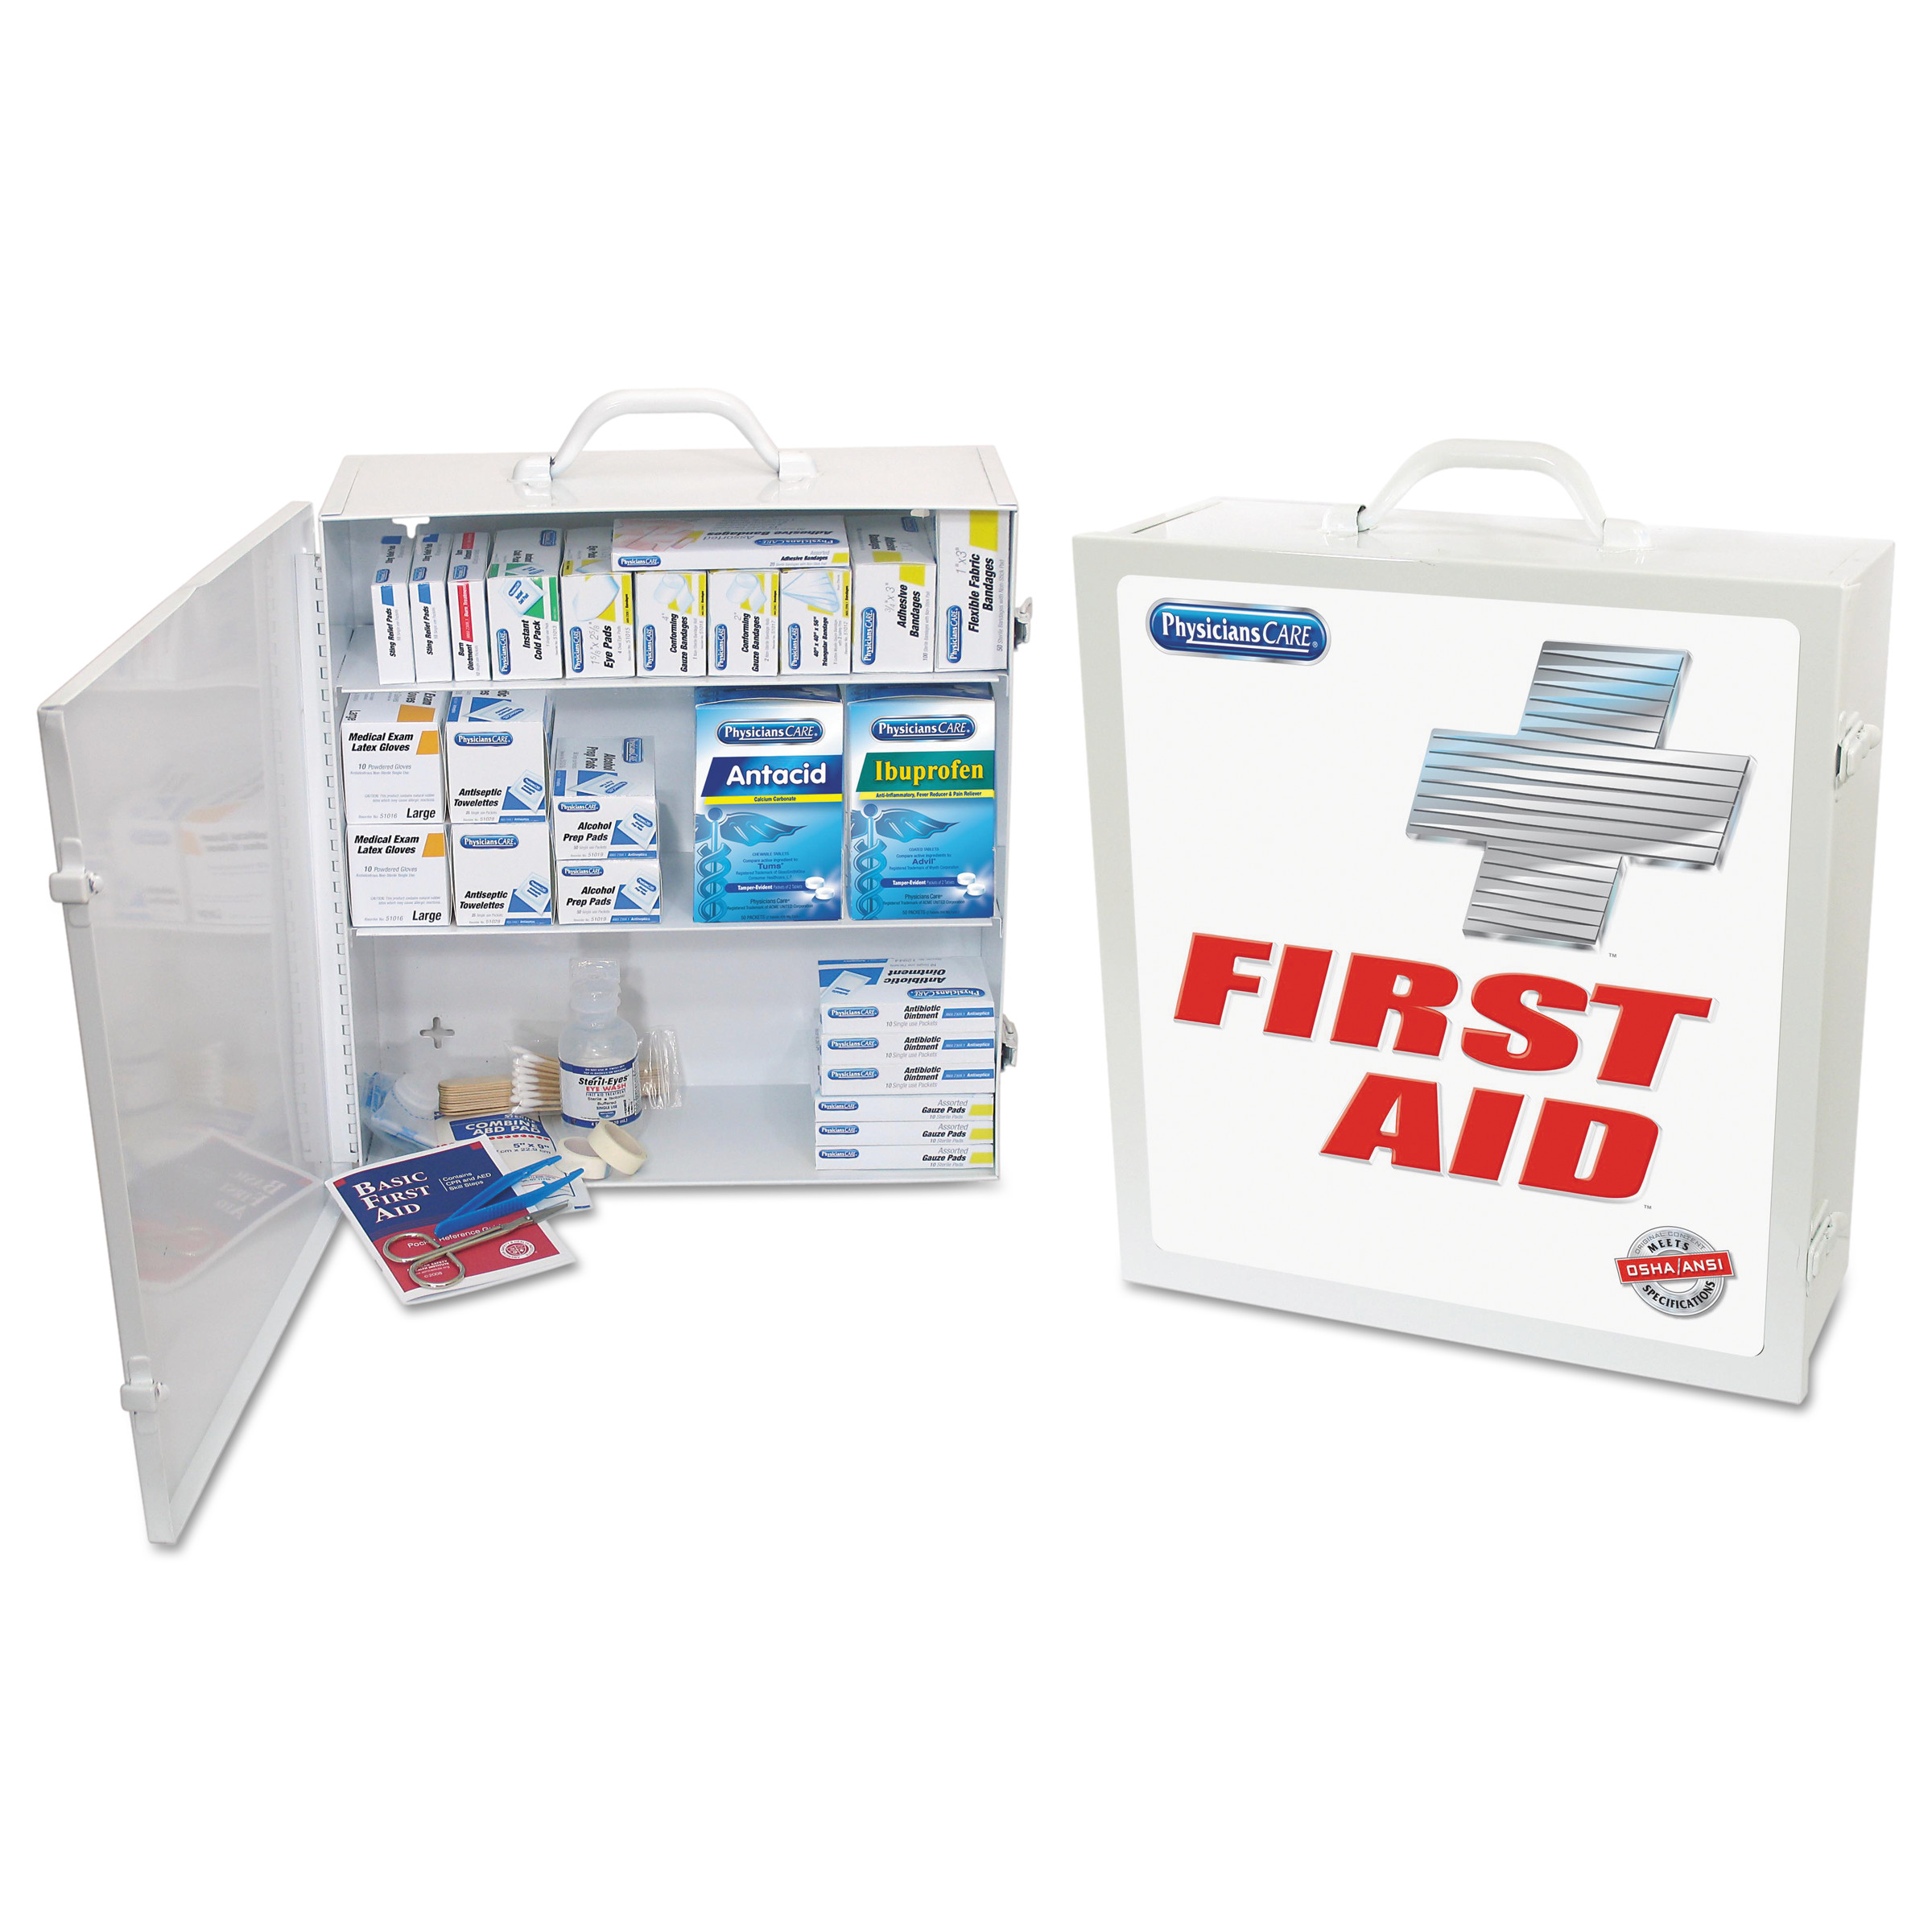 PhysiciansCare by First Aid Only Industrial First Aid Kit for 100 People, 721 Pieces/Kit